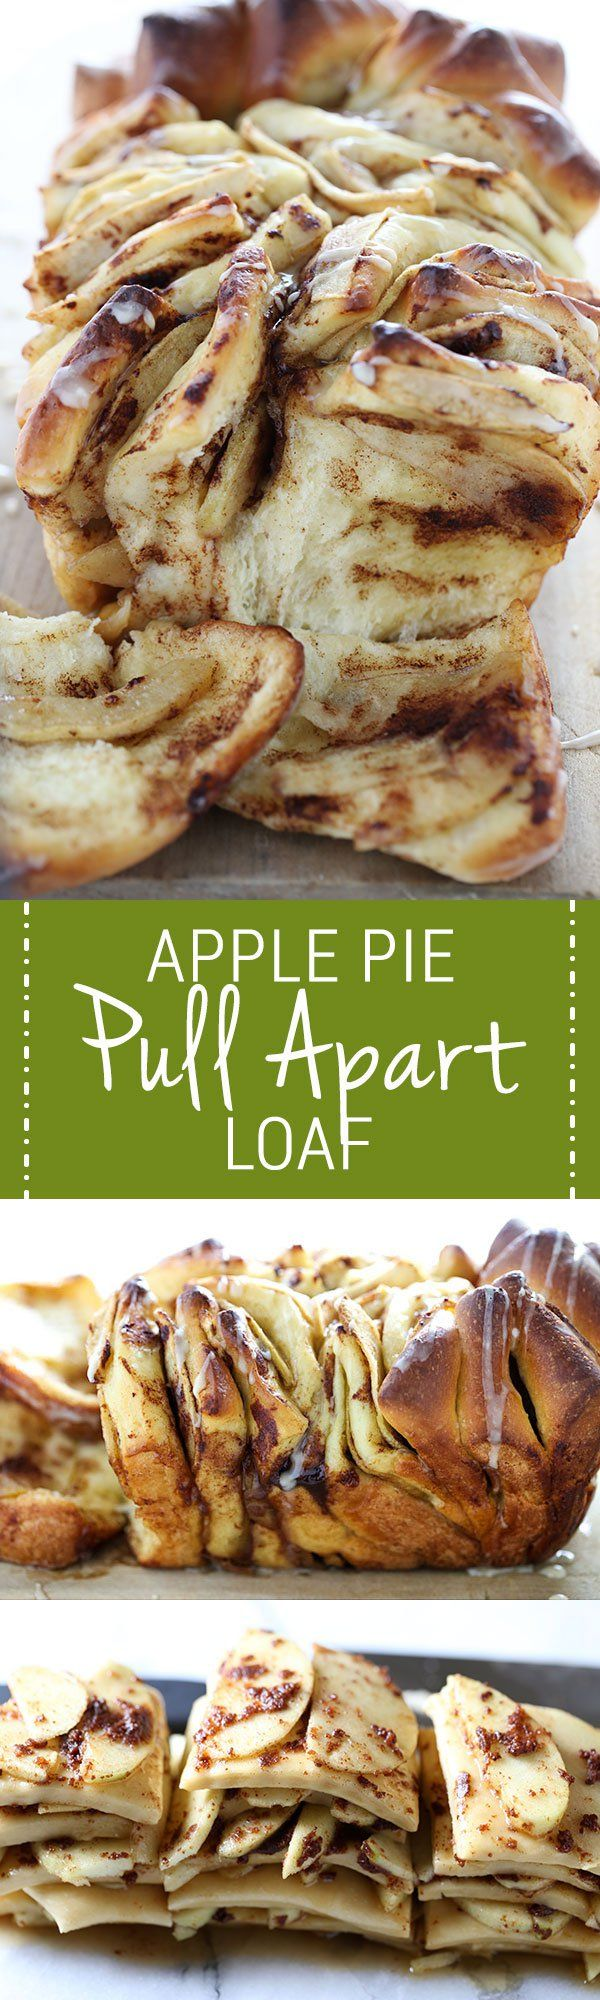 The most SCRUMPTIOUS fall dessert there ever was!! We inhaled this! Step-by-step photos and detailed instructions included.